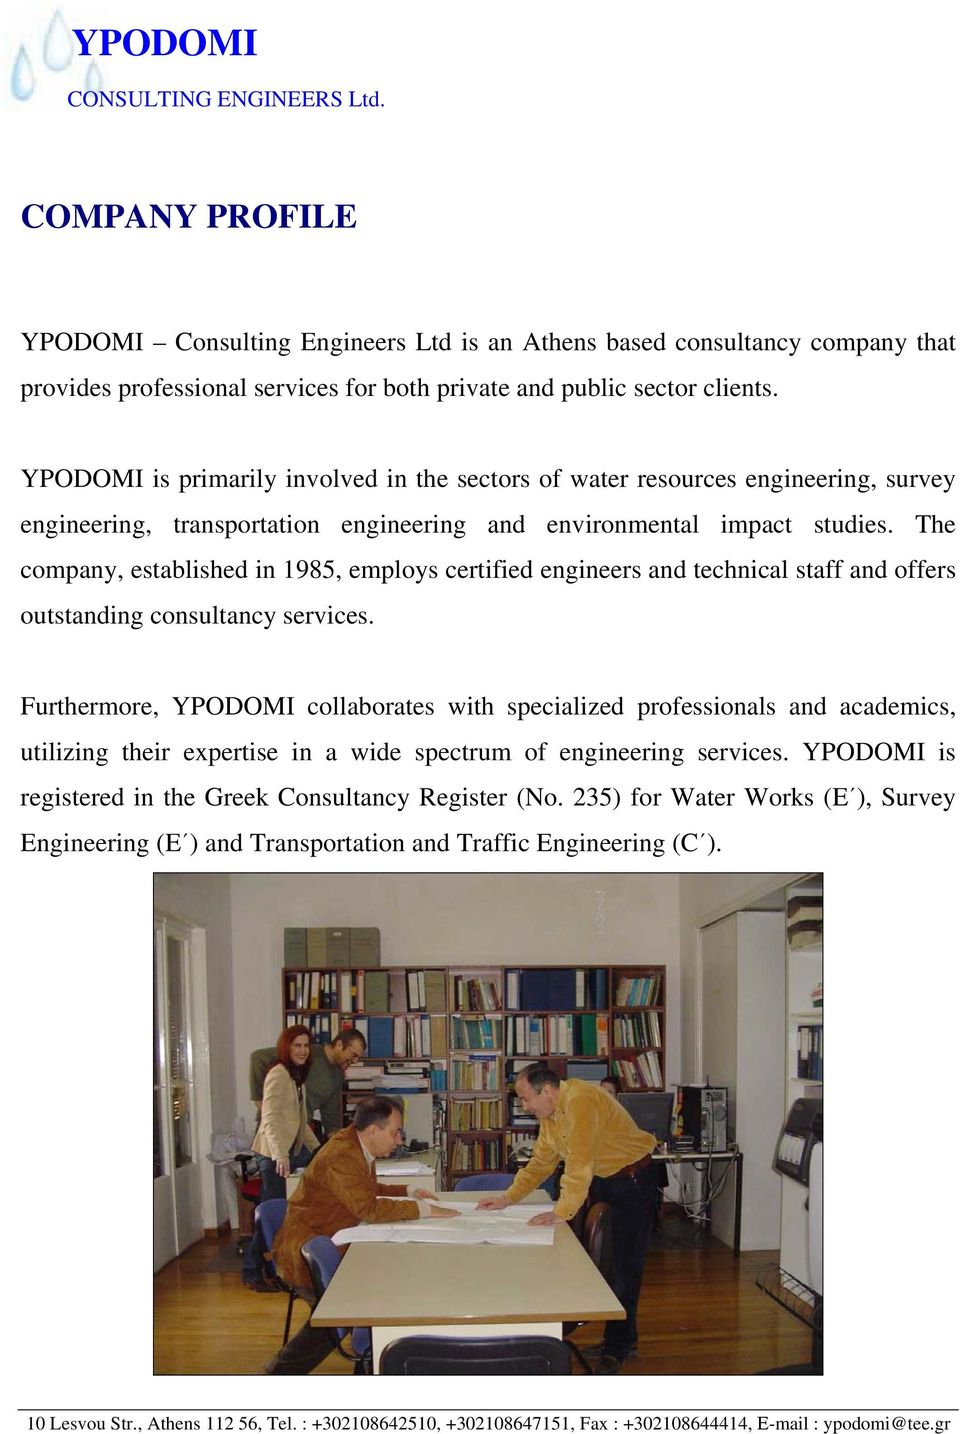 YPODOMI is primarily involved in the sectors of water resources engineering, survey engineering, transportation engineering and environmental impact studies.